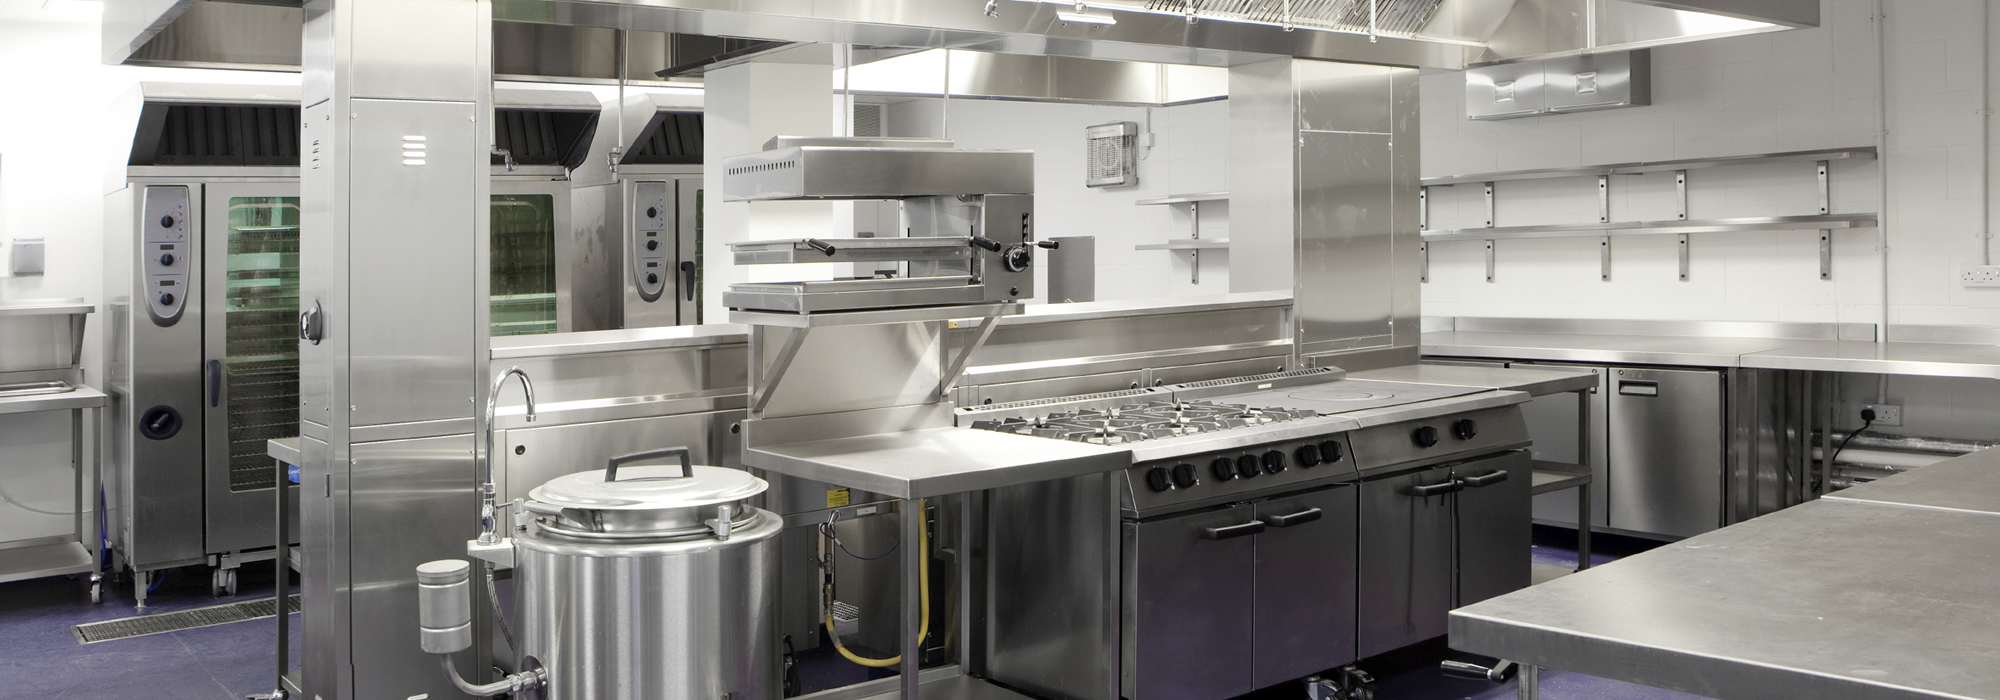 Esco Refresh's commercial kitchen maintenance services include kitchen deep cleaning, extraction canopy cleaning, commercial kitchen equipment repairs and ...